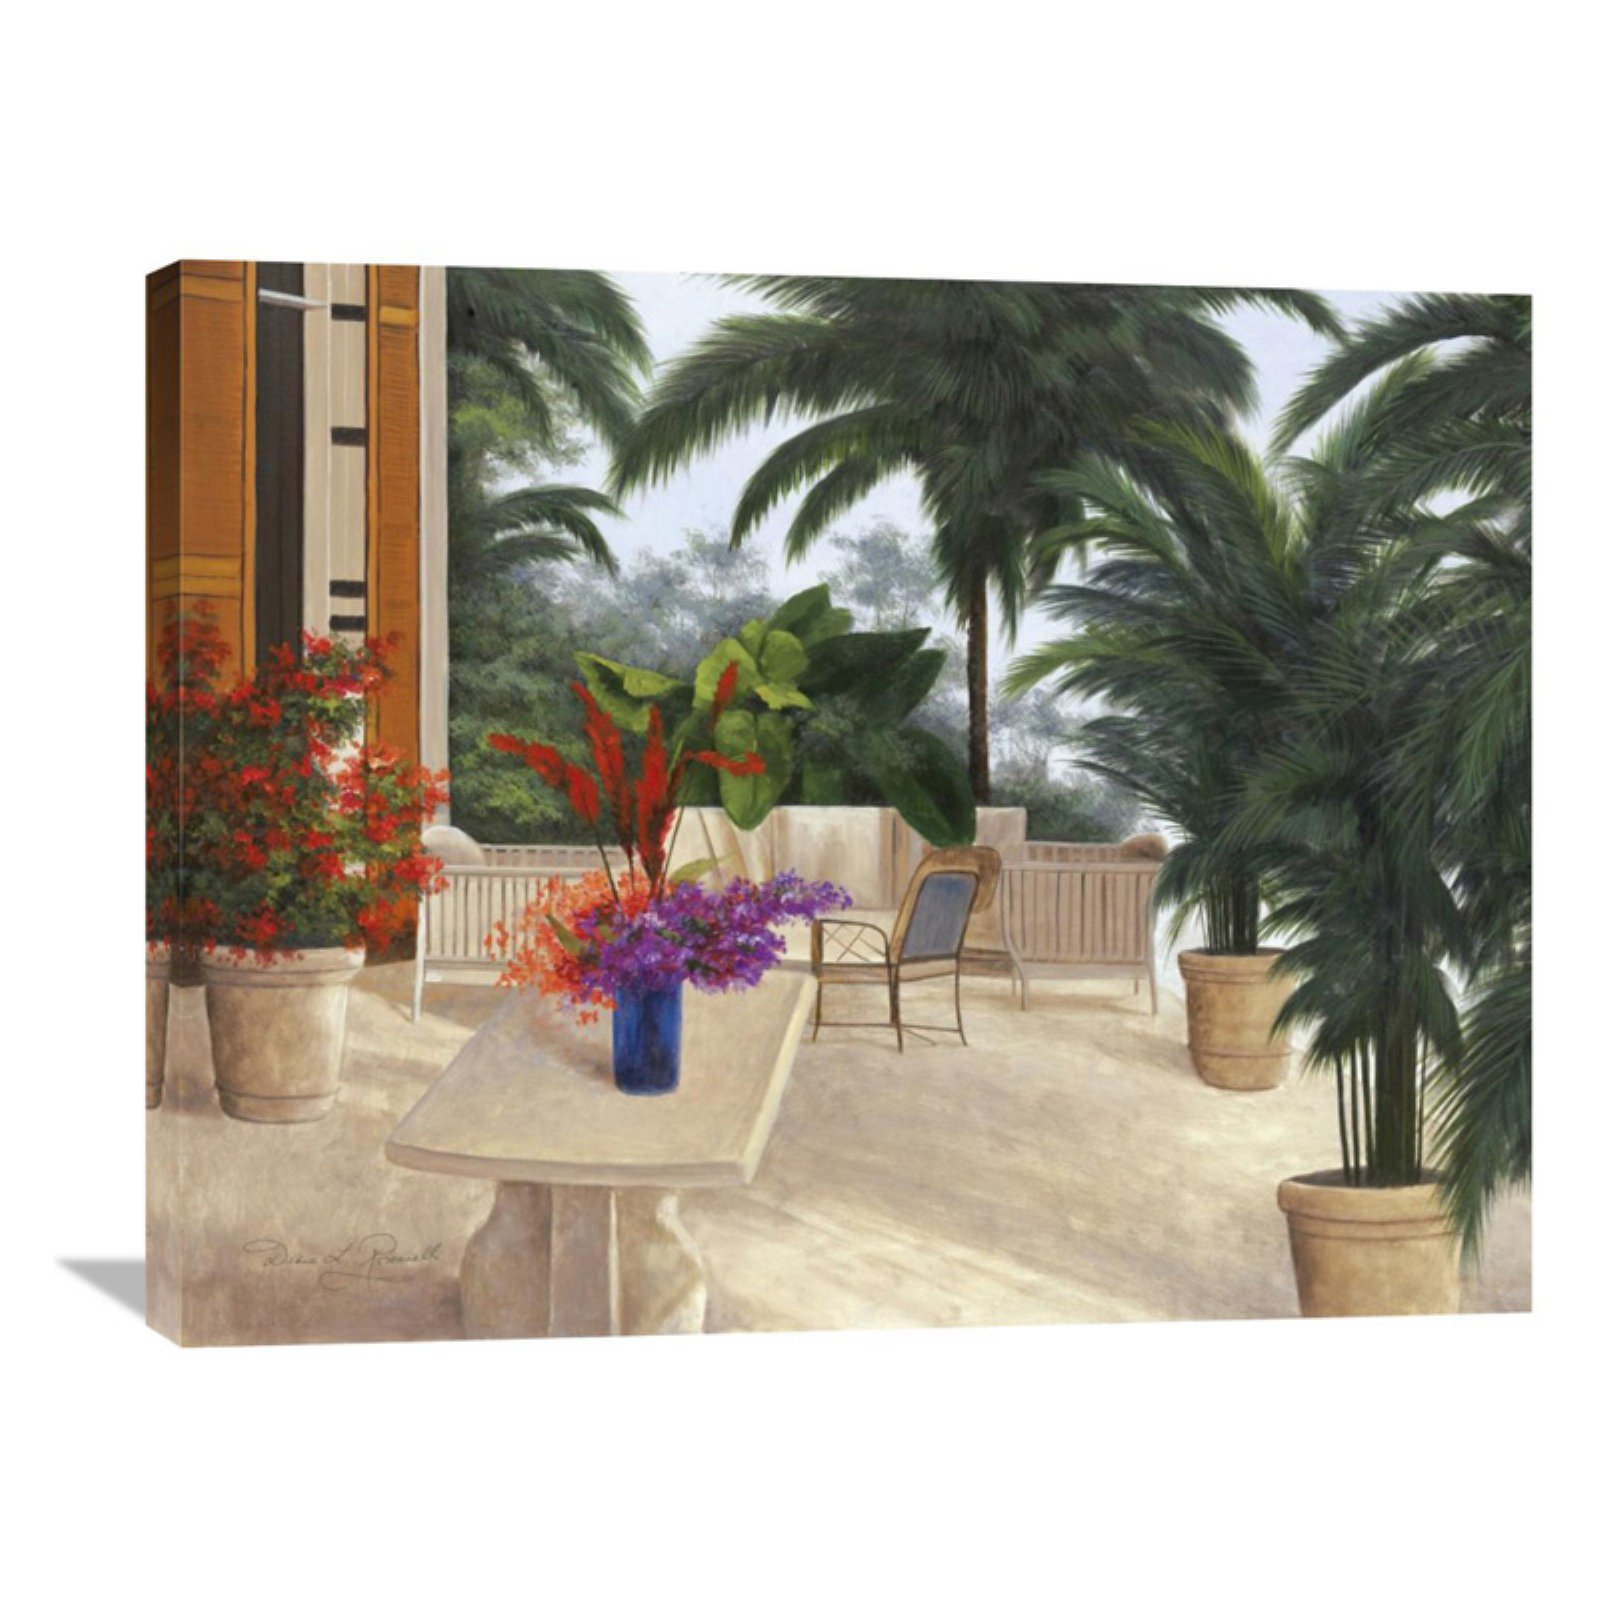 Global Gallery Private Patio Wall Art Walmart Com